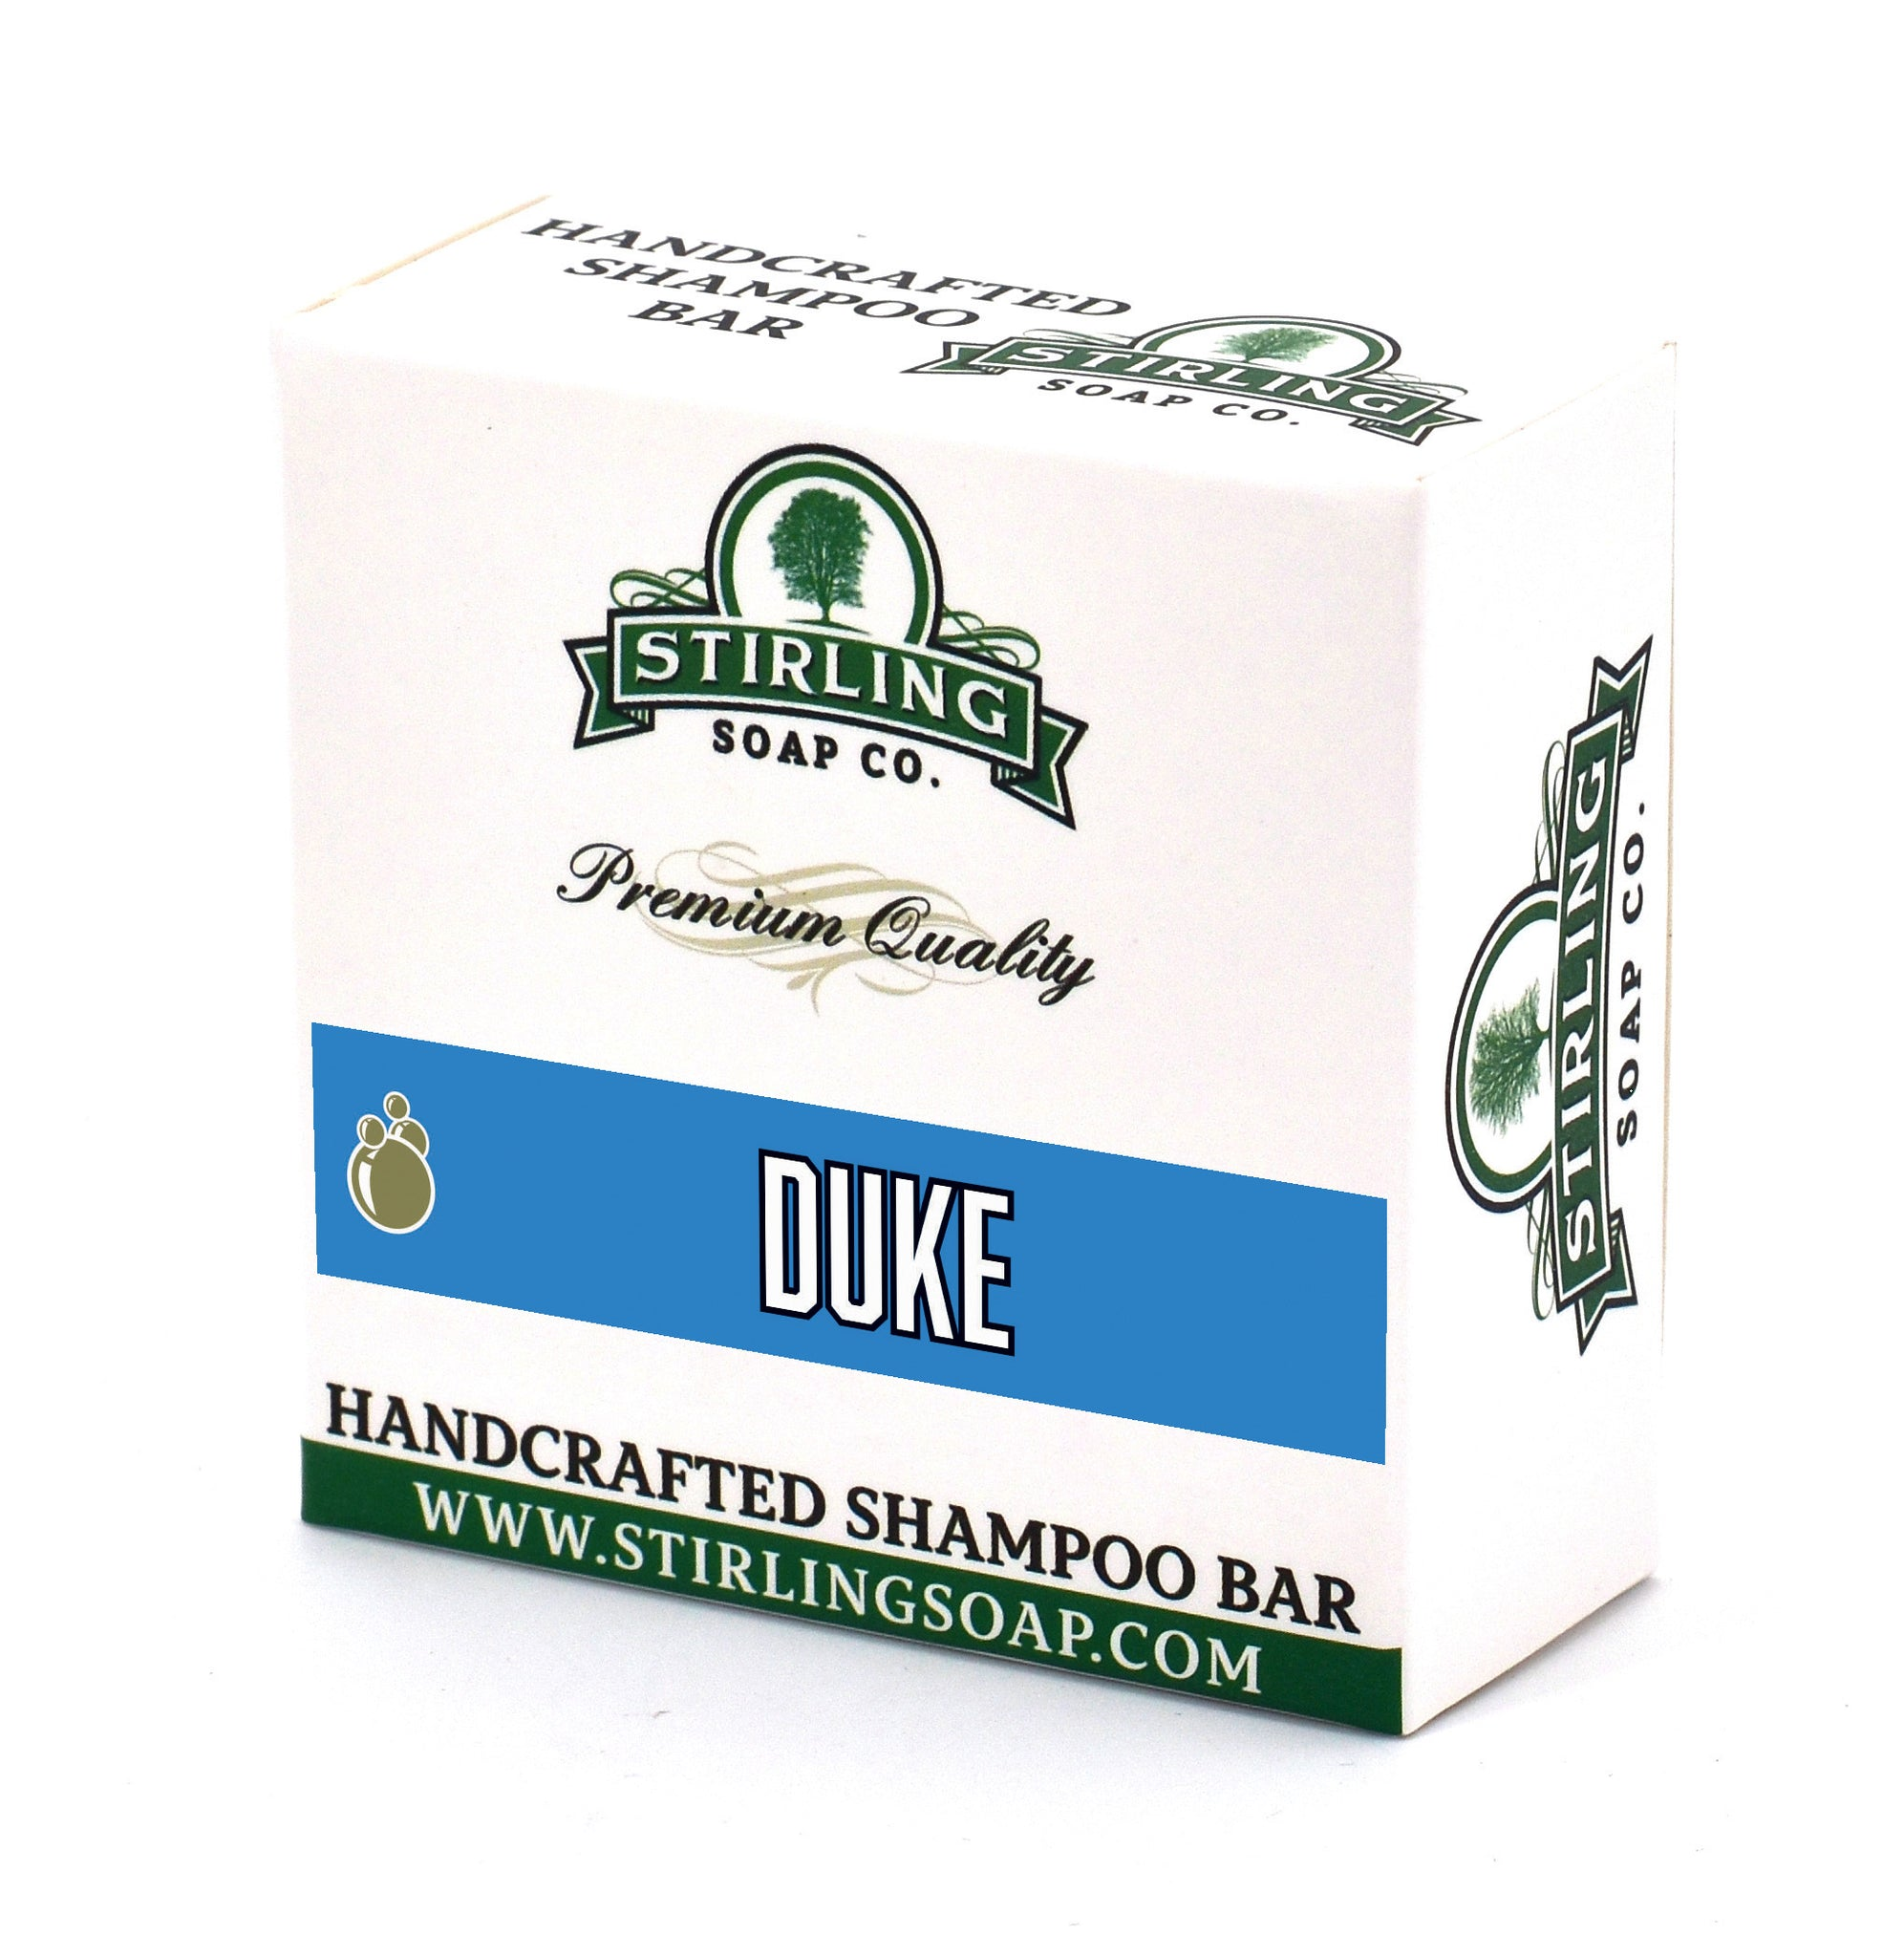 Duke - Shampoo Bar